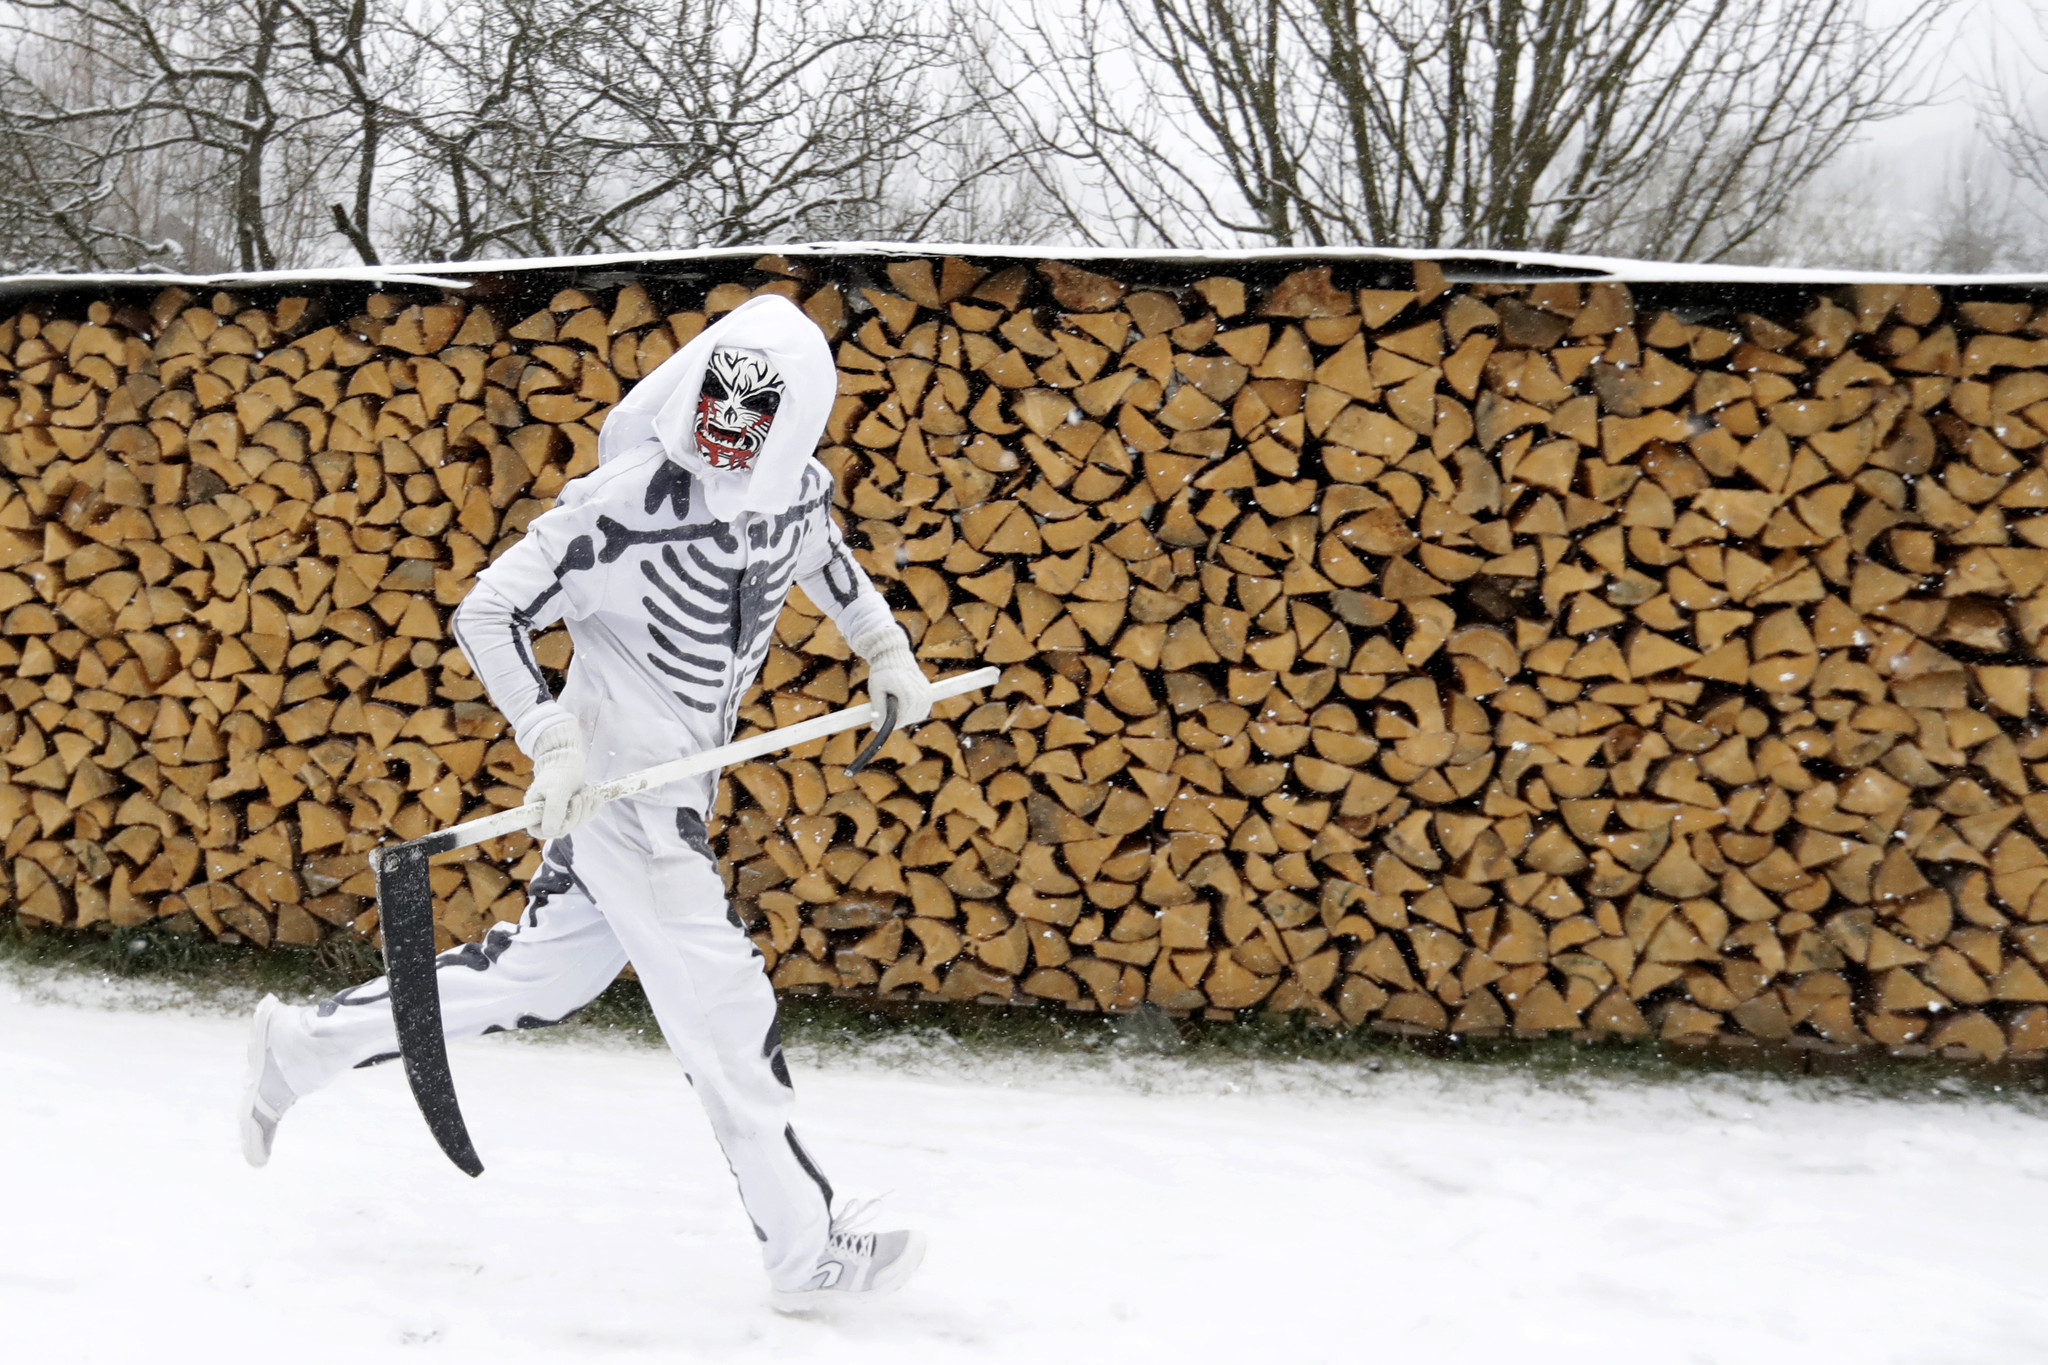 Grim reapers, devils join St. Nick in traditional Czech romp